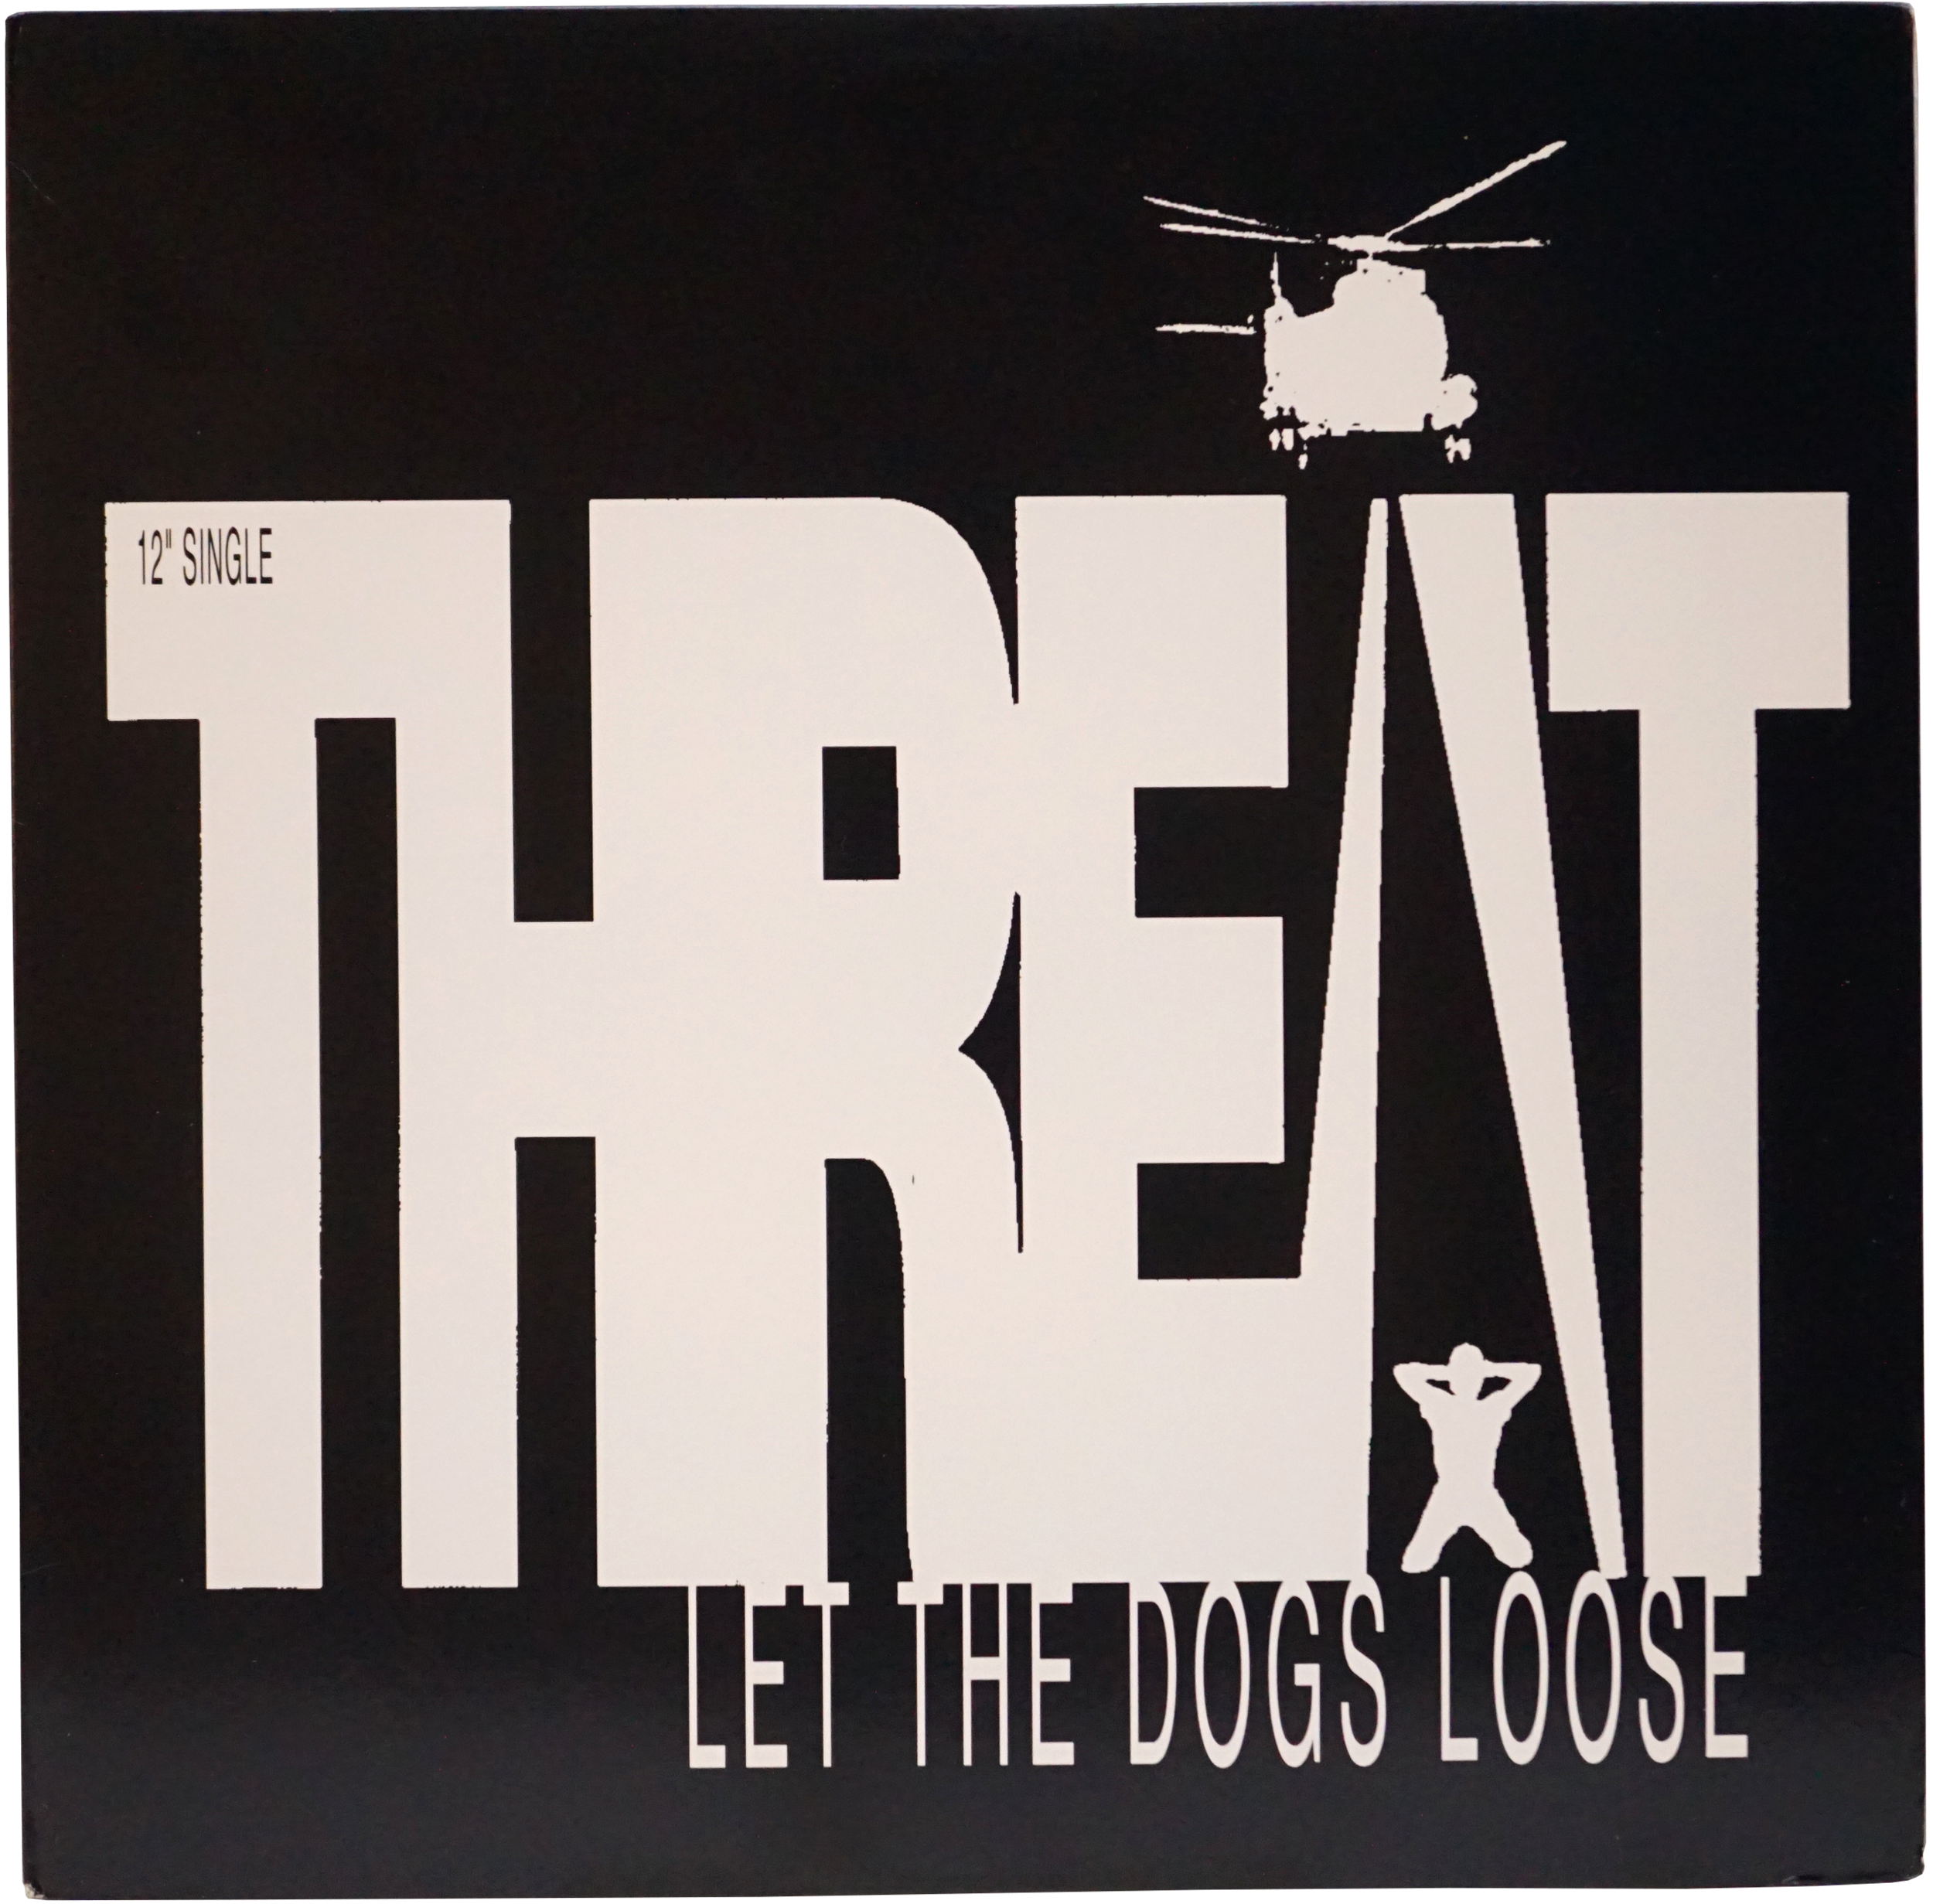 WLWLTDOO-1993-12-THREAT-LET_THE_DOGS_LOOSE-FRONT-PRO10481.png